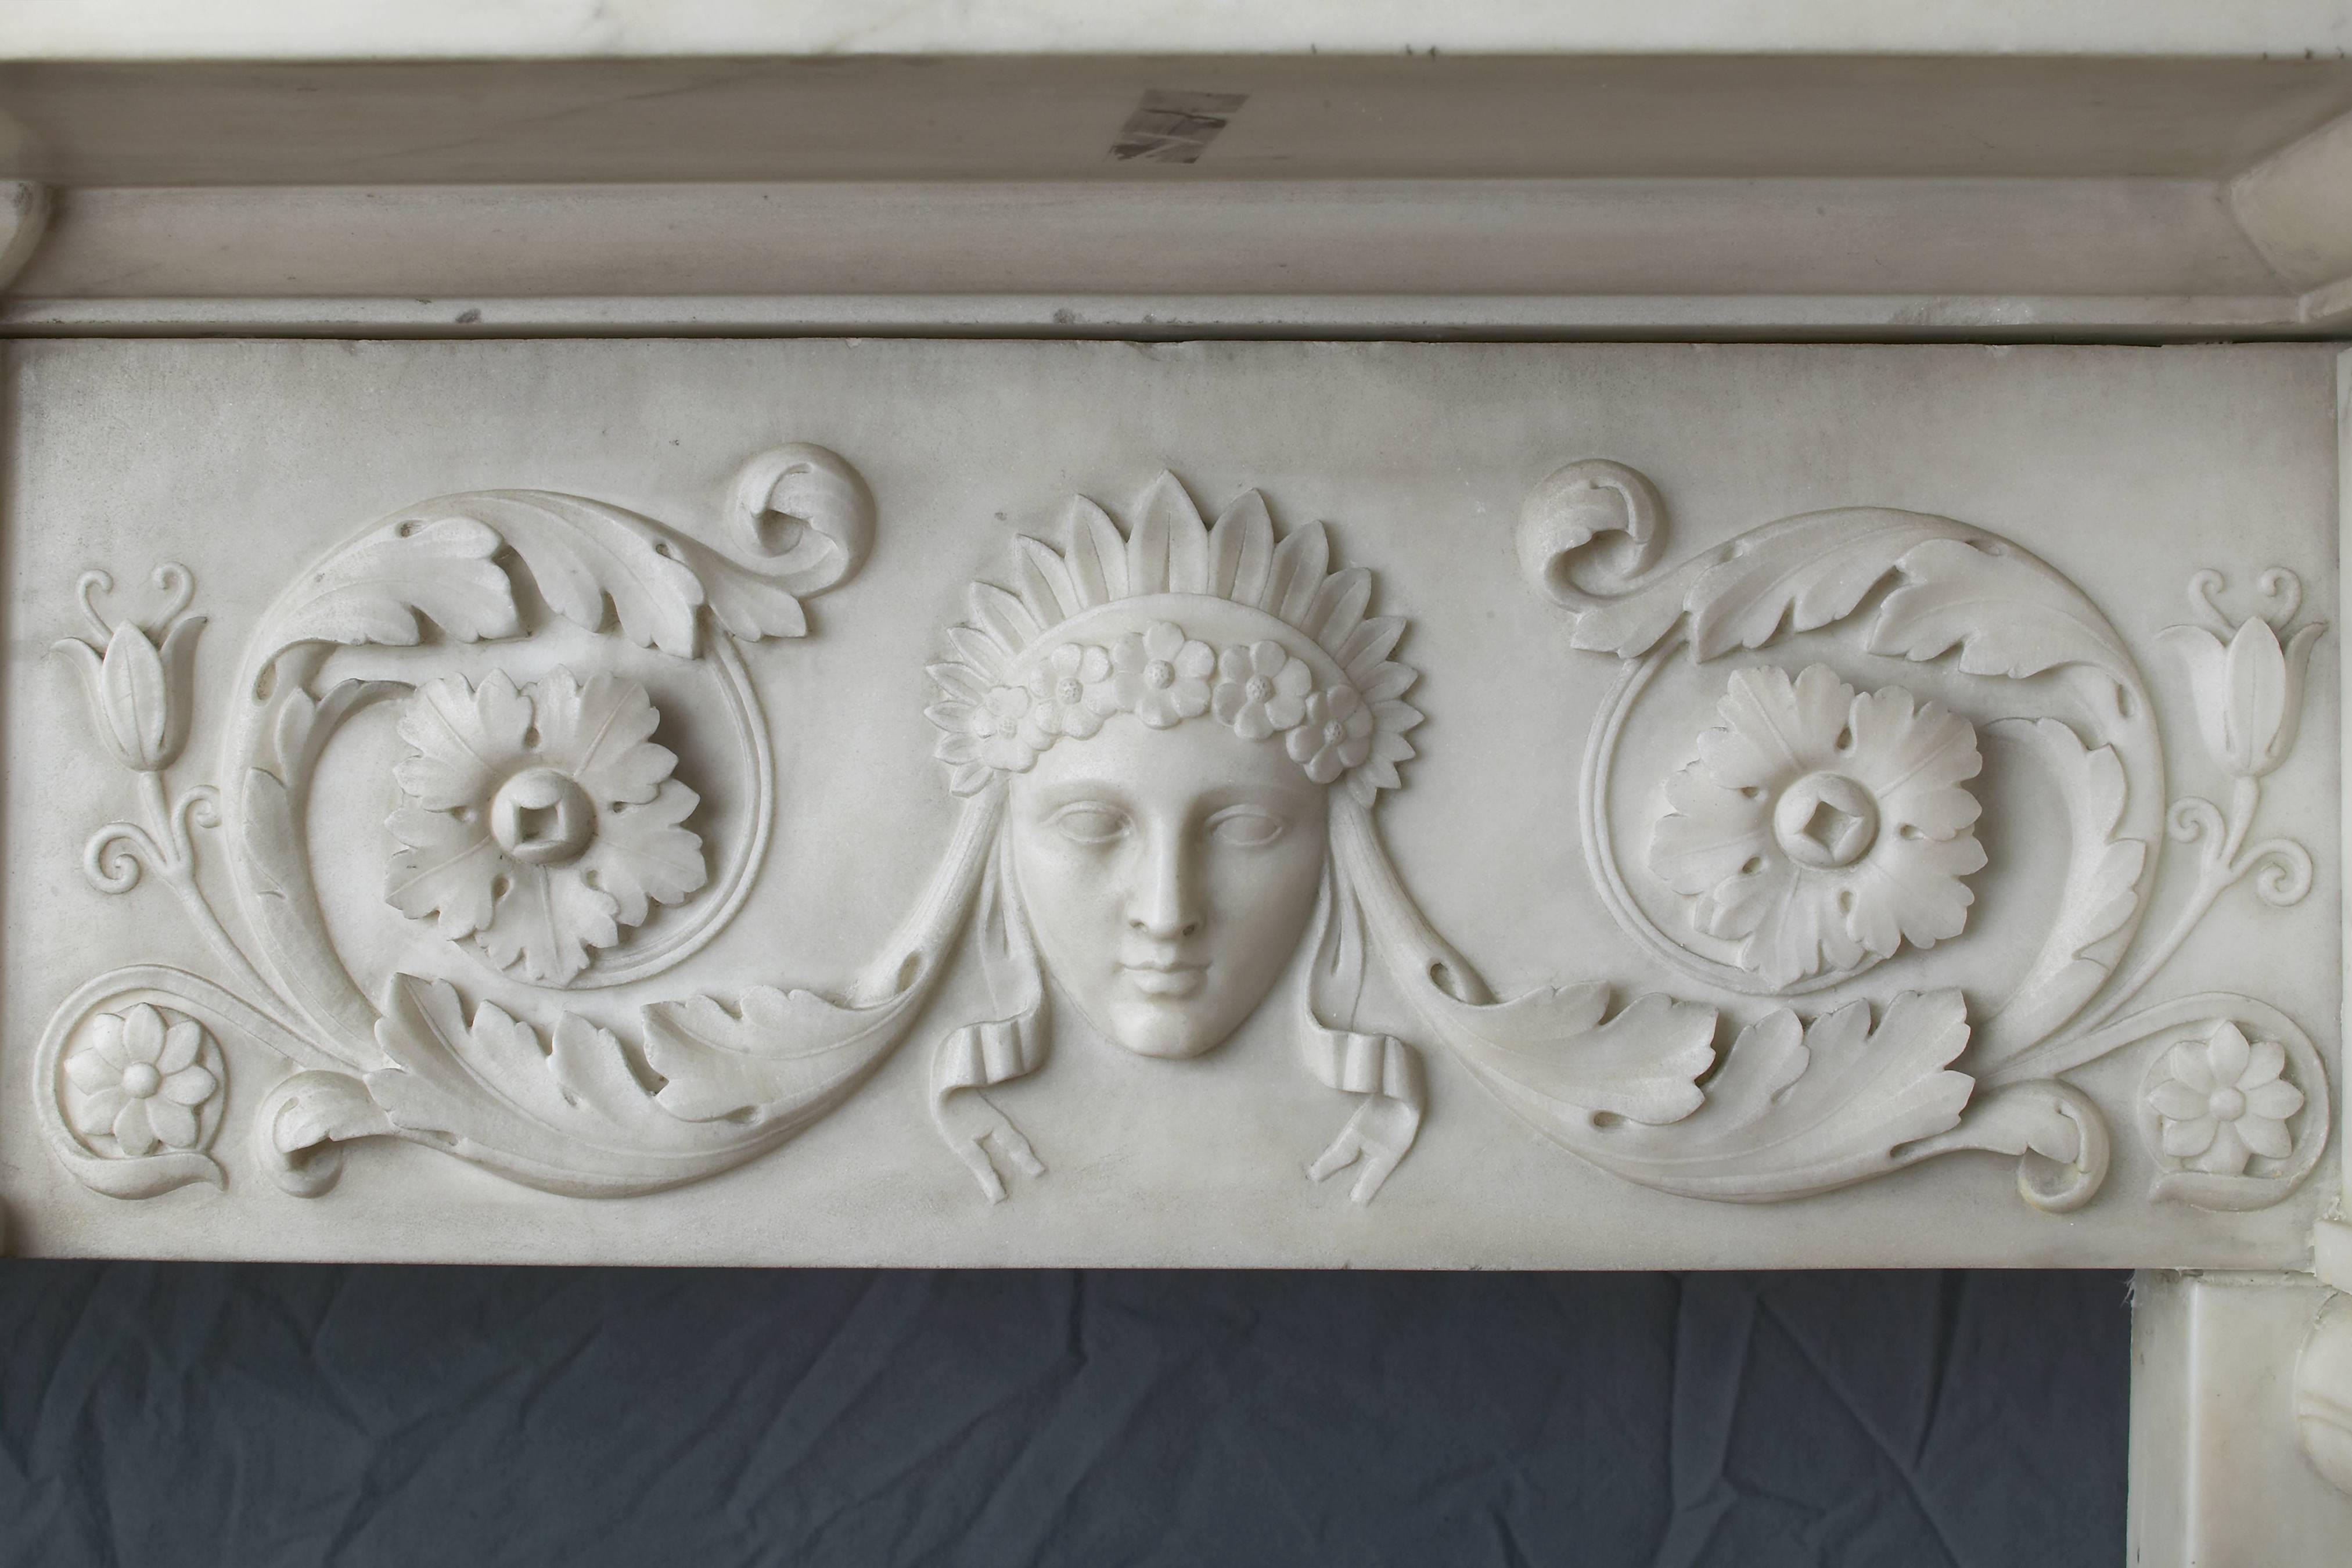 Detail from mantelpiece lintel with a carved with classical goddesses. When Pribell spotted a dust-covered mantelpiece in the basement of a client's newly purchased home, it was the start of a long relationship.